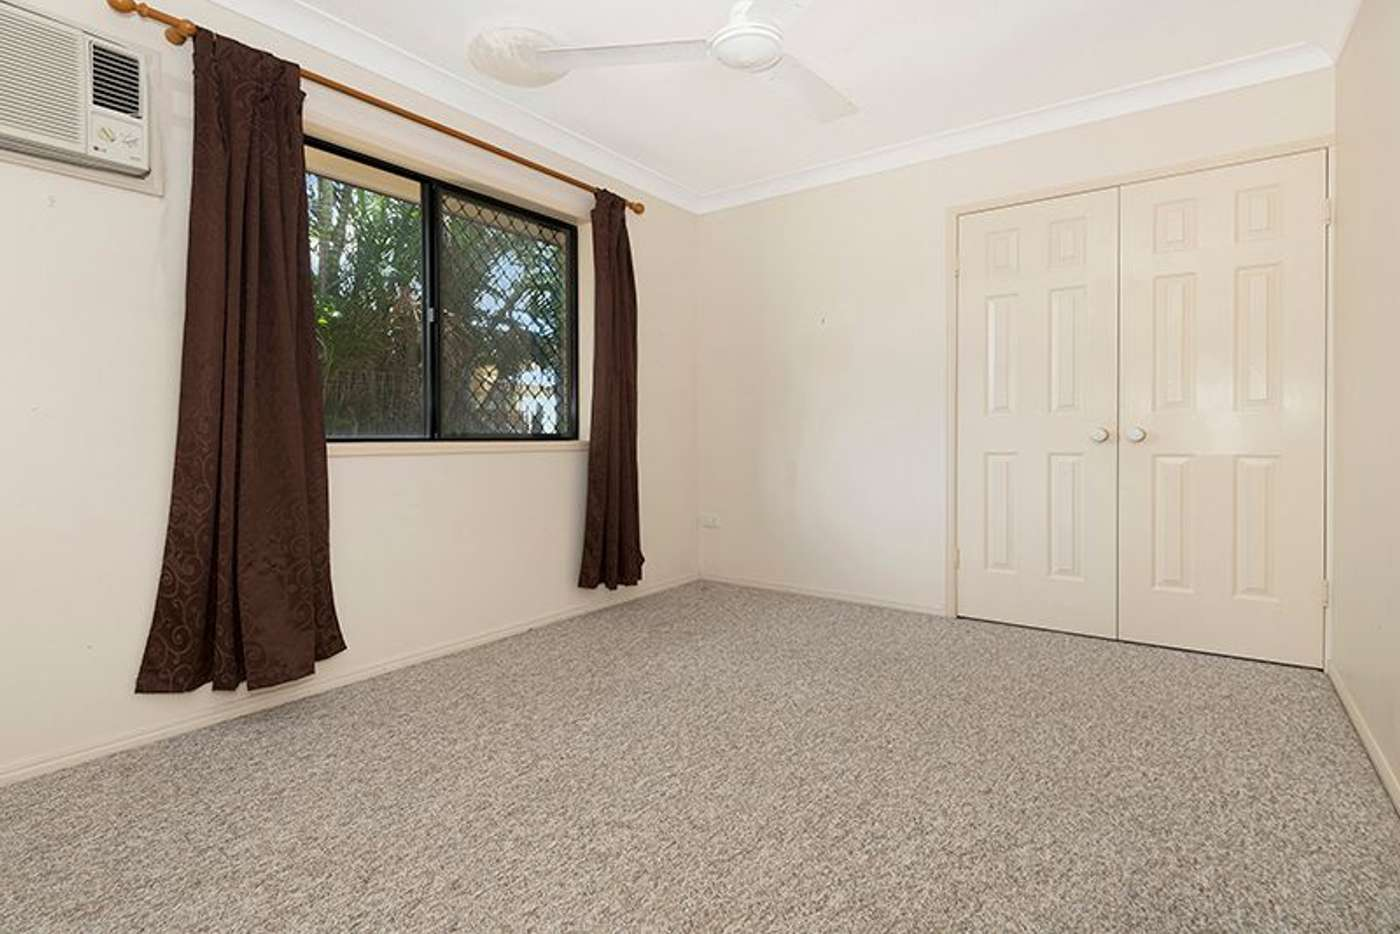 Sixth view of Homely house listing, 7 McCullough Court, Annandale QLD 4814